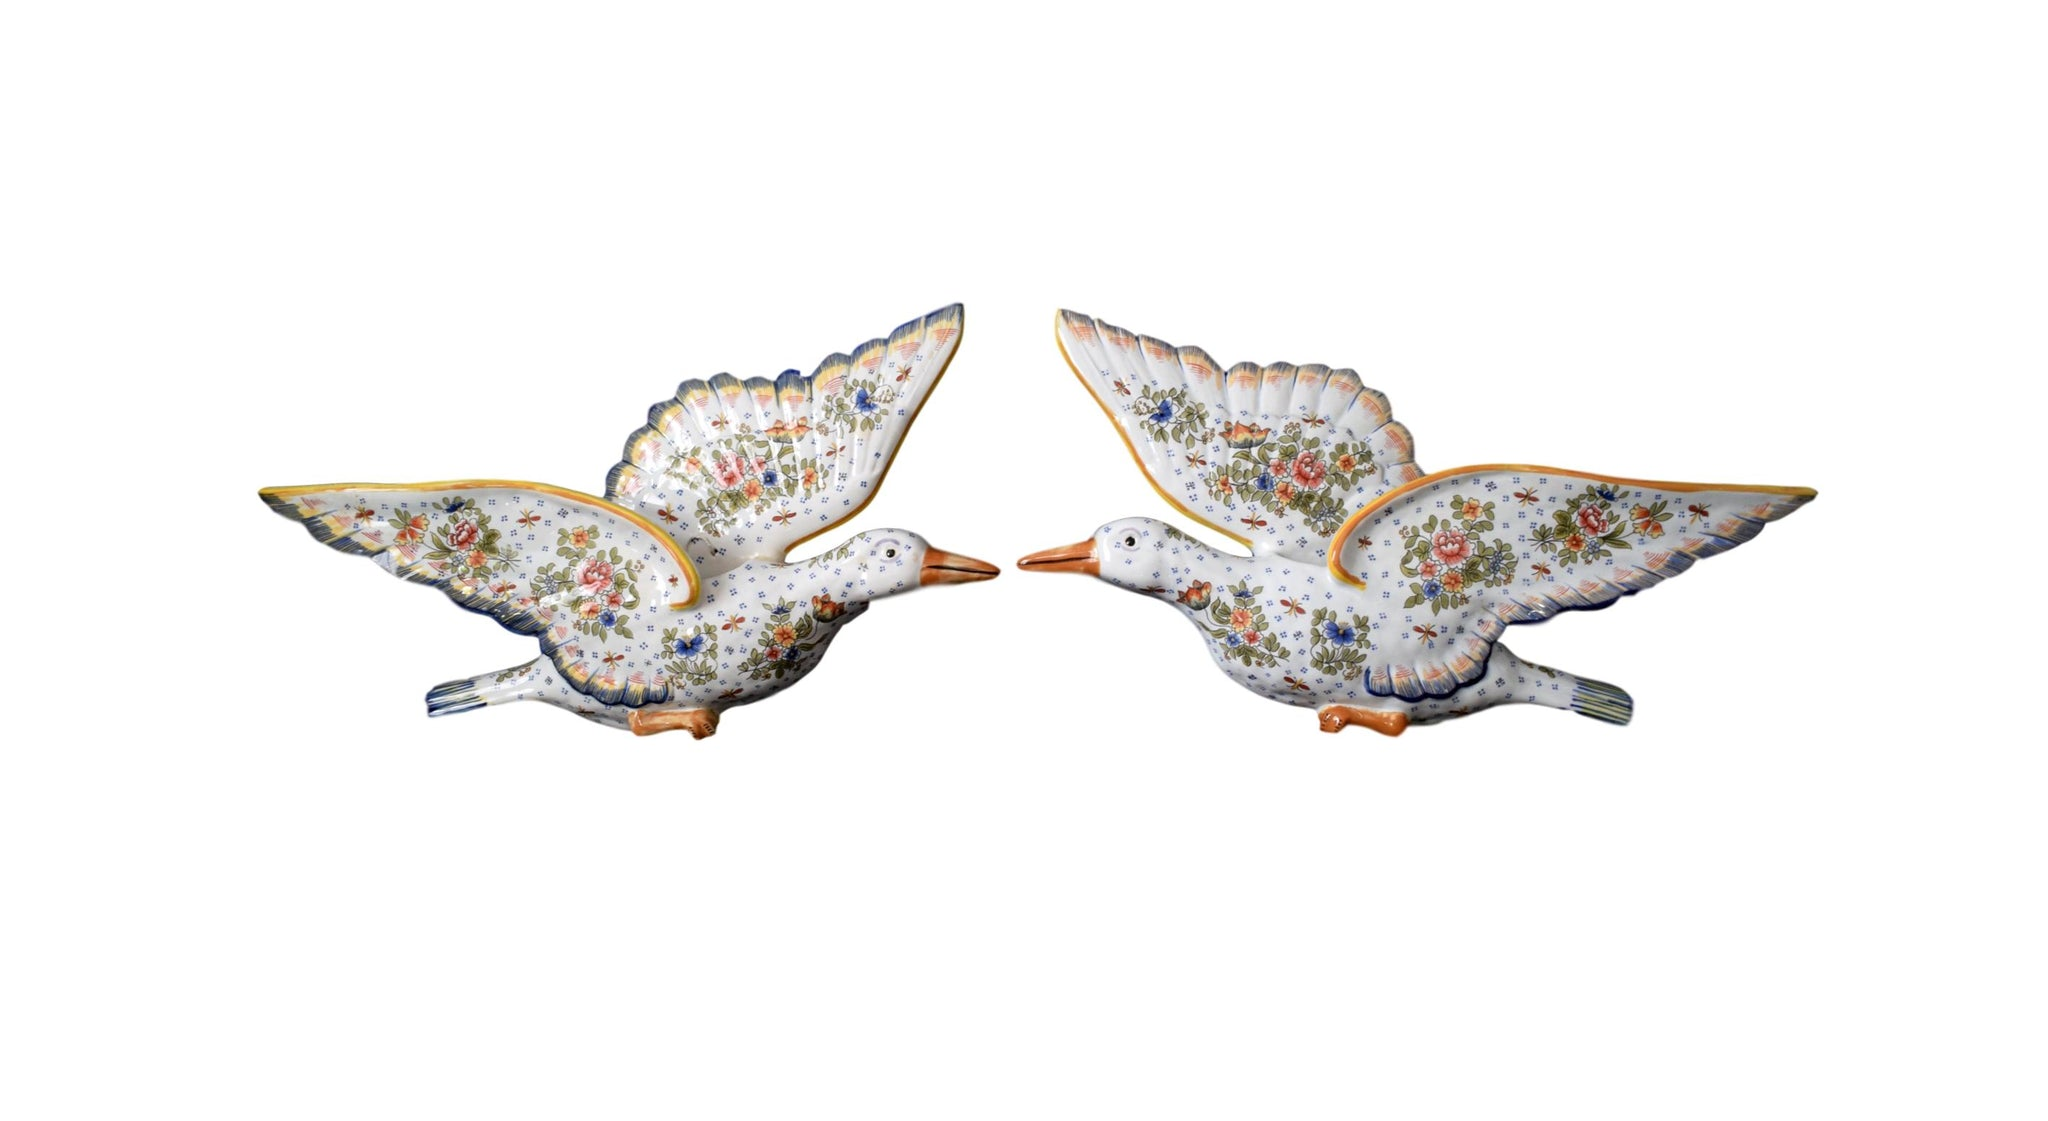 Rare Pair of Gooses Wall Pocket French Antique Hand Painted Desvres Fourmaintraux Rouen Decor - Majolica Figural Flower Wall Vases